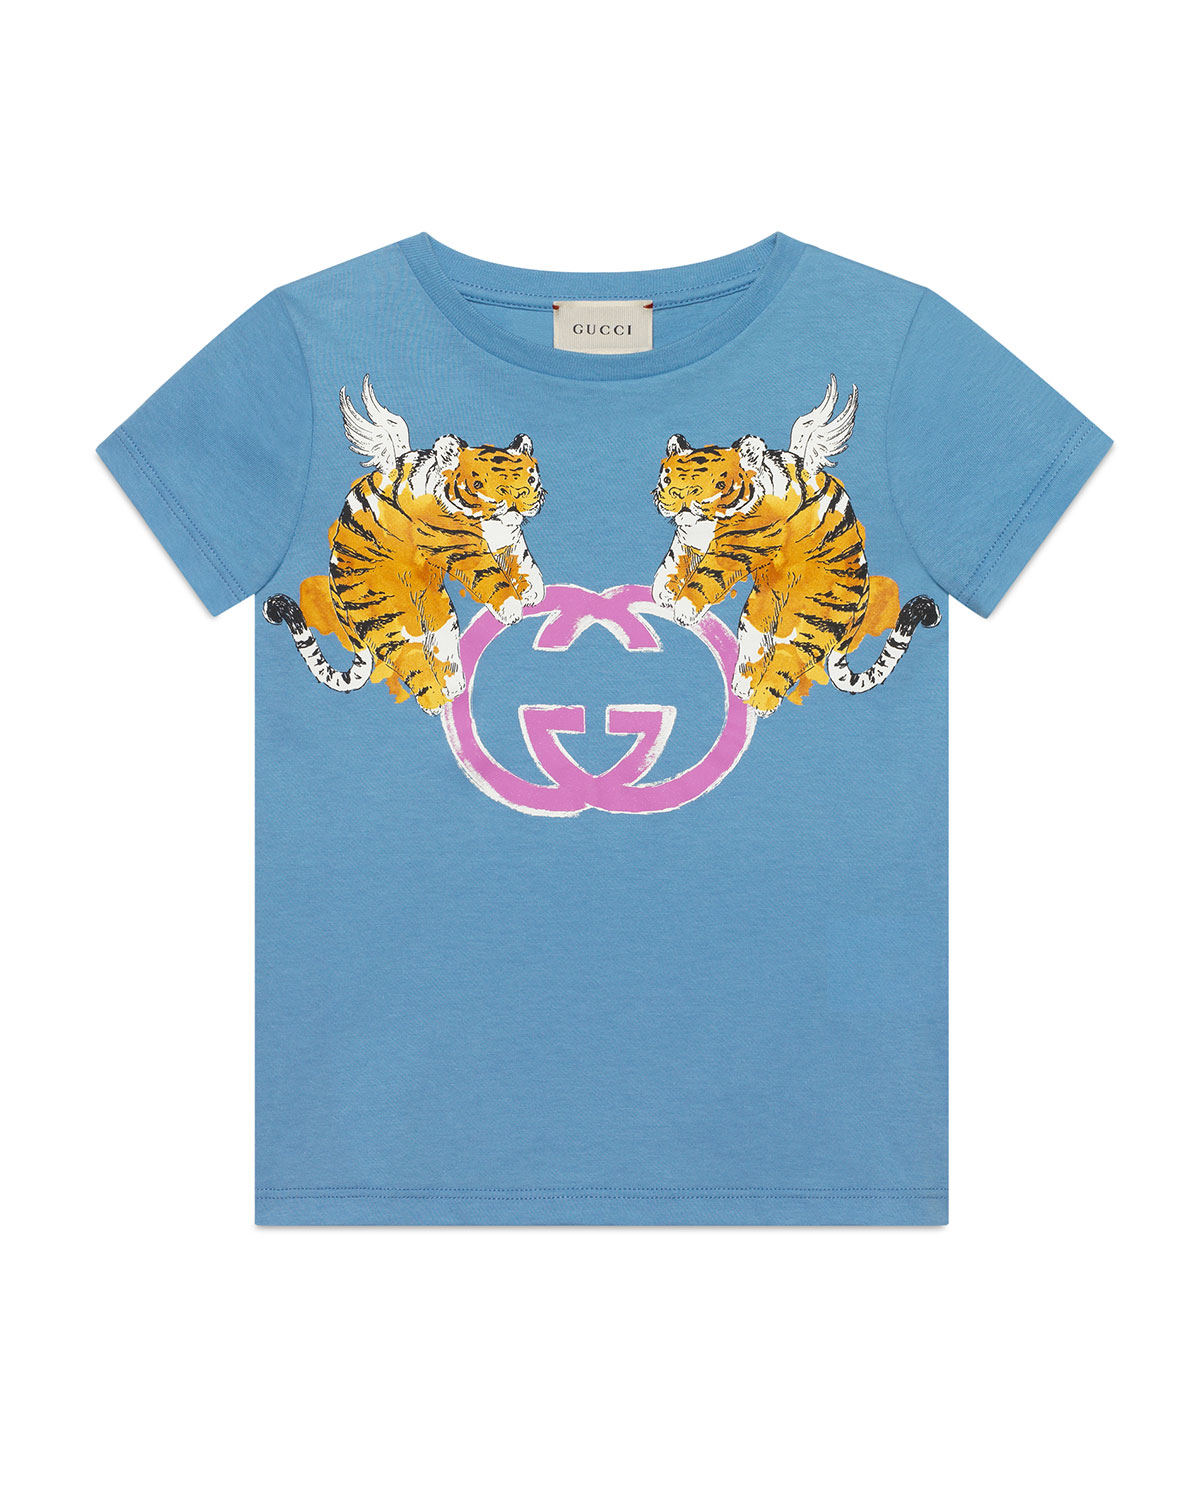 9a7a5a79 Gucci Double Tiger GG Short-Sleeve T-Shirt, Size 4-10 | Neiman Marcus